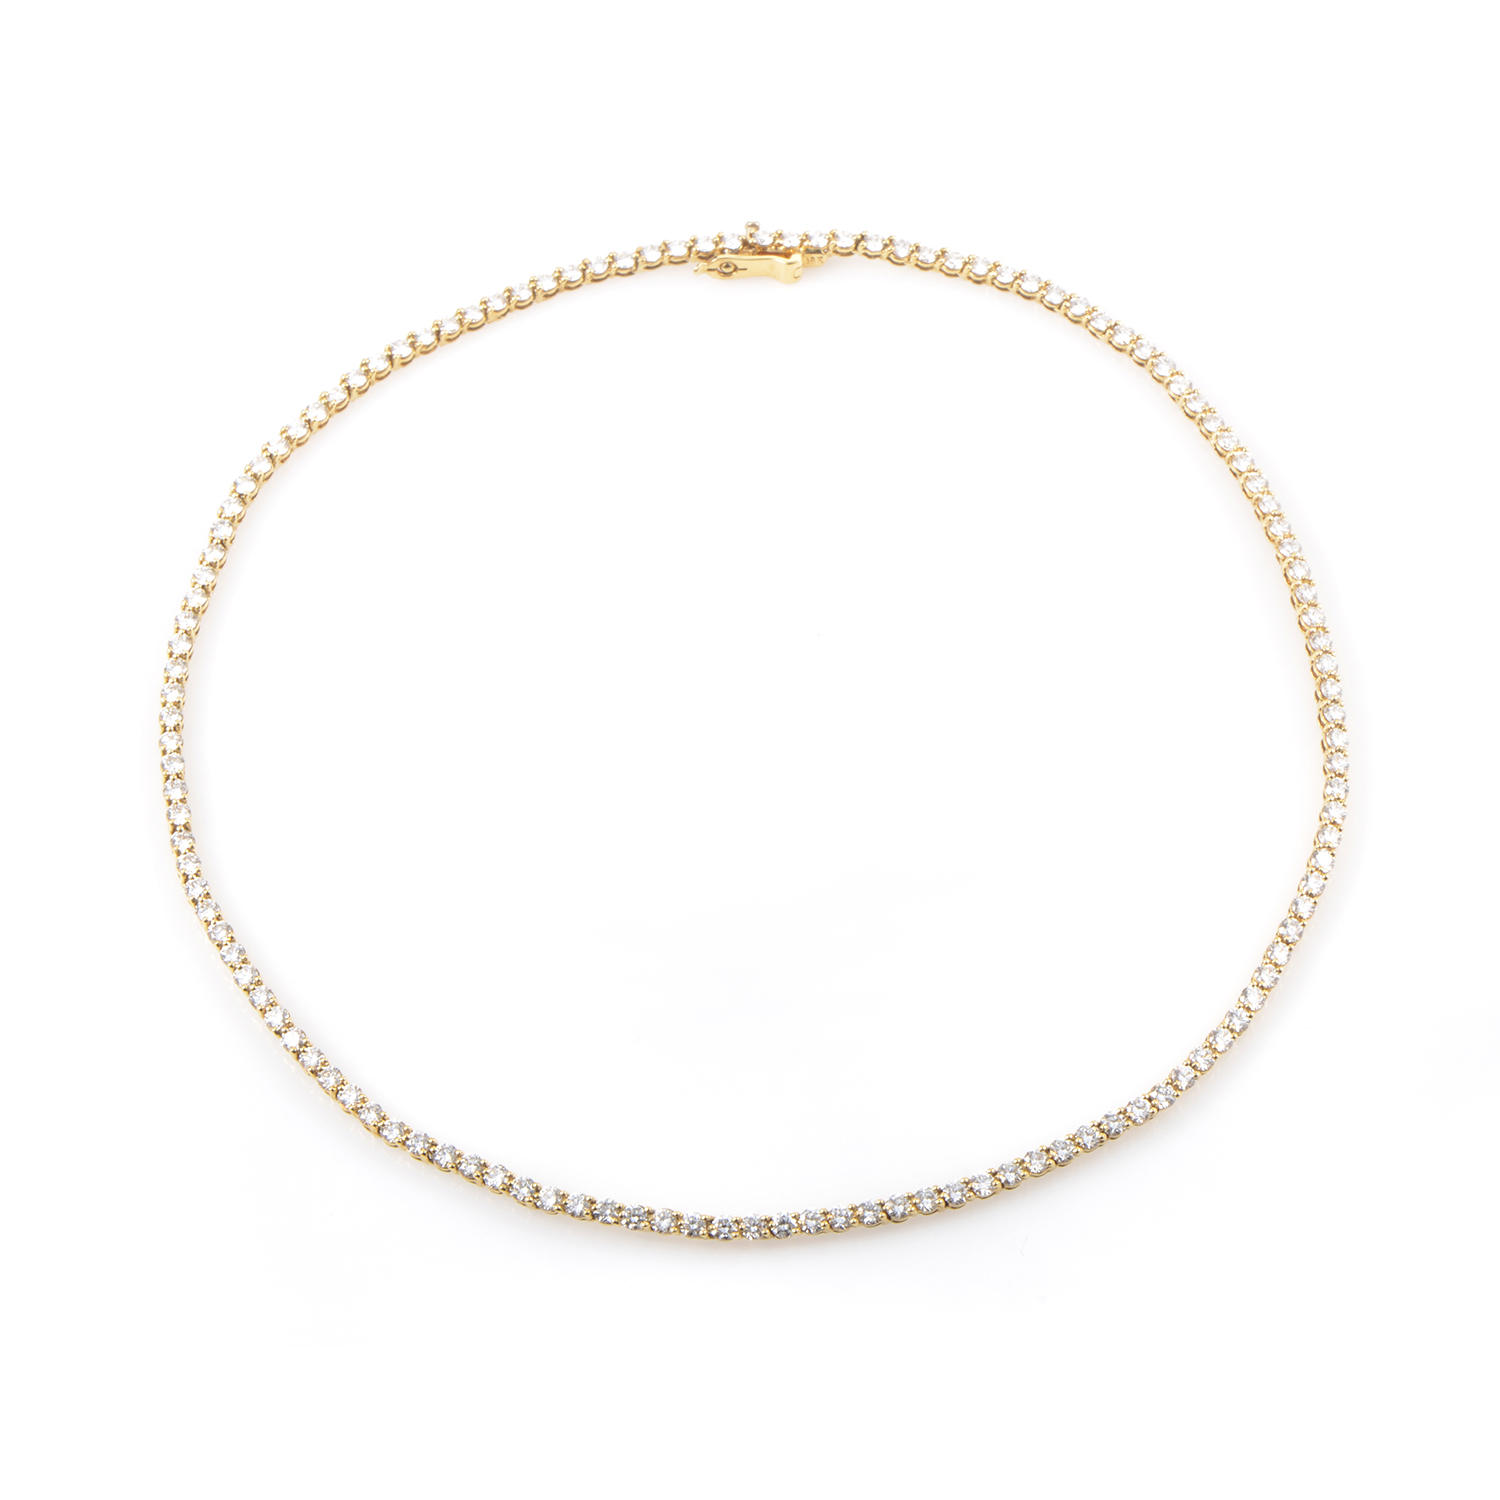 Tiffany & Co. 18K Yellow Gold Diamond Tennis Necklace